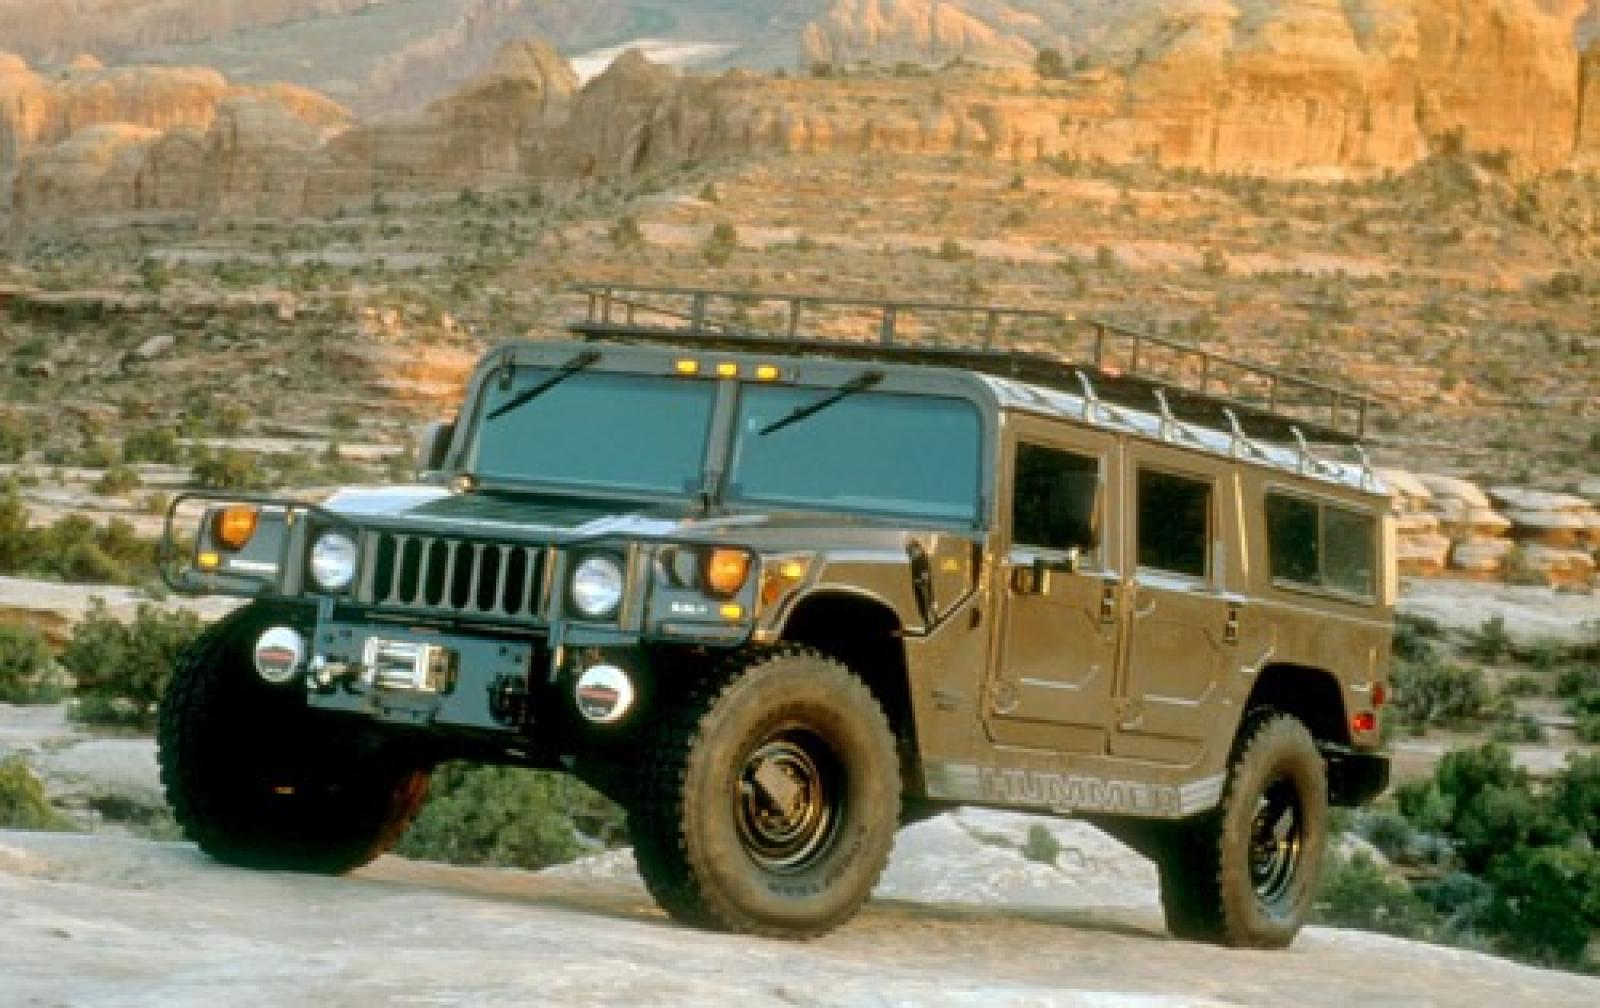 2000 am general hummer op exterior 3 800 1024 1280 1600 origin